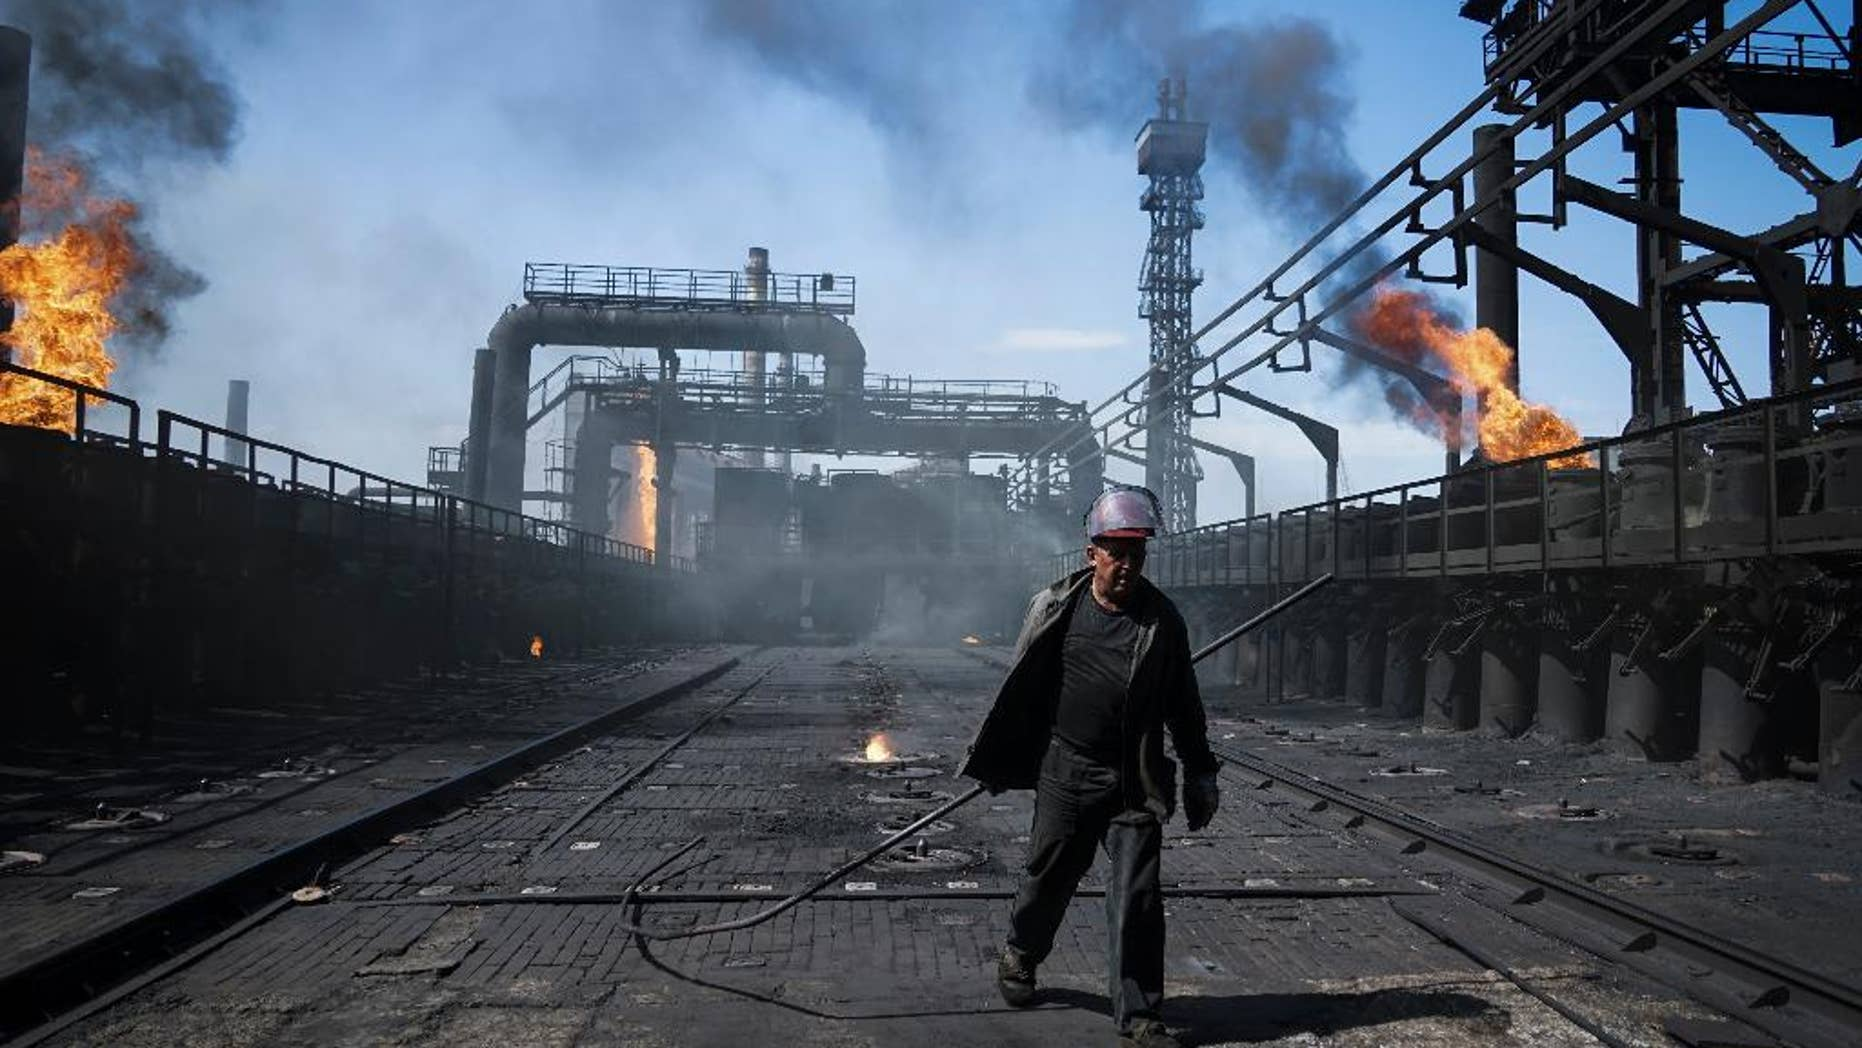 A worker carries a metal rod at the front-line Avdivka coking plant in eastern Ukraine, where the power cut out after shelling.